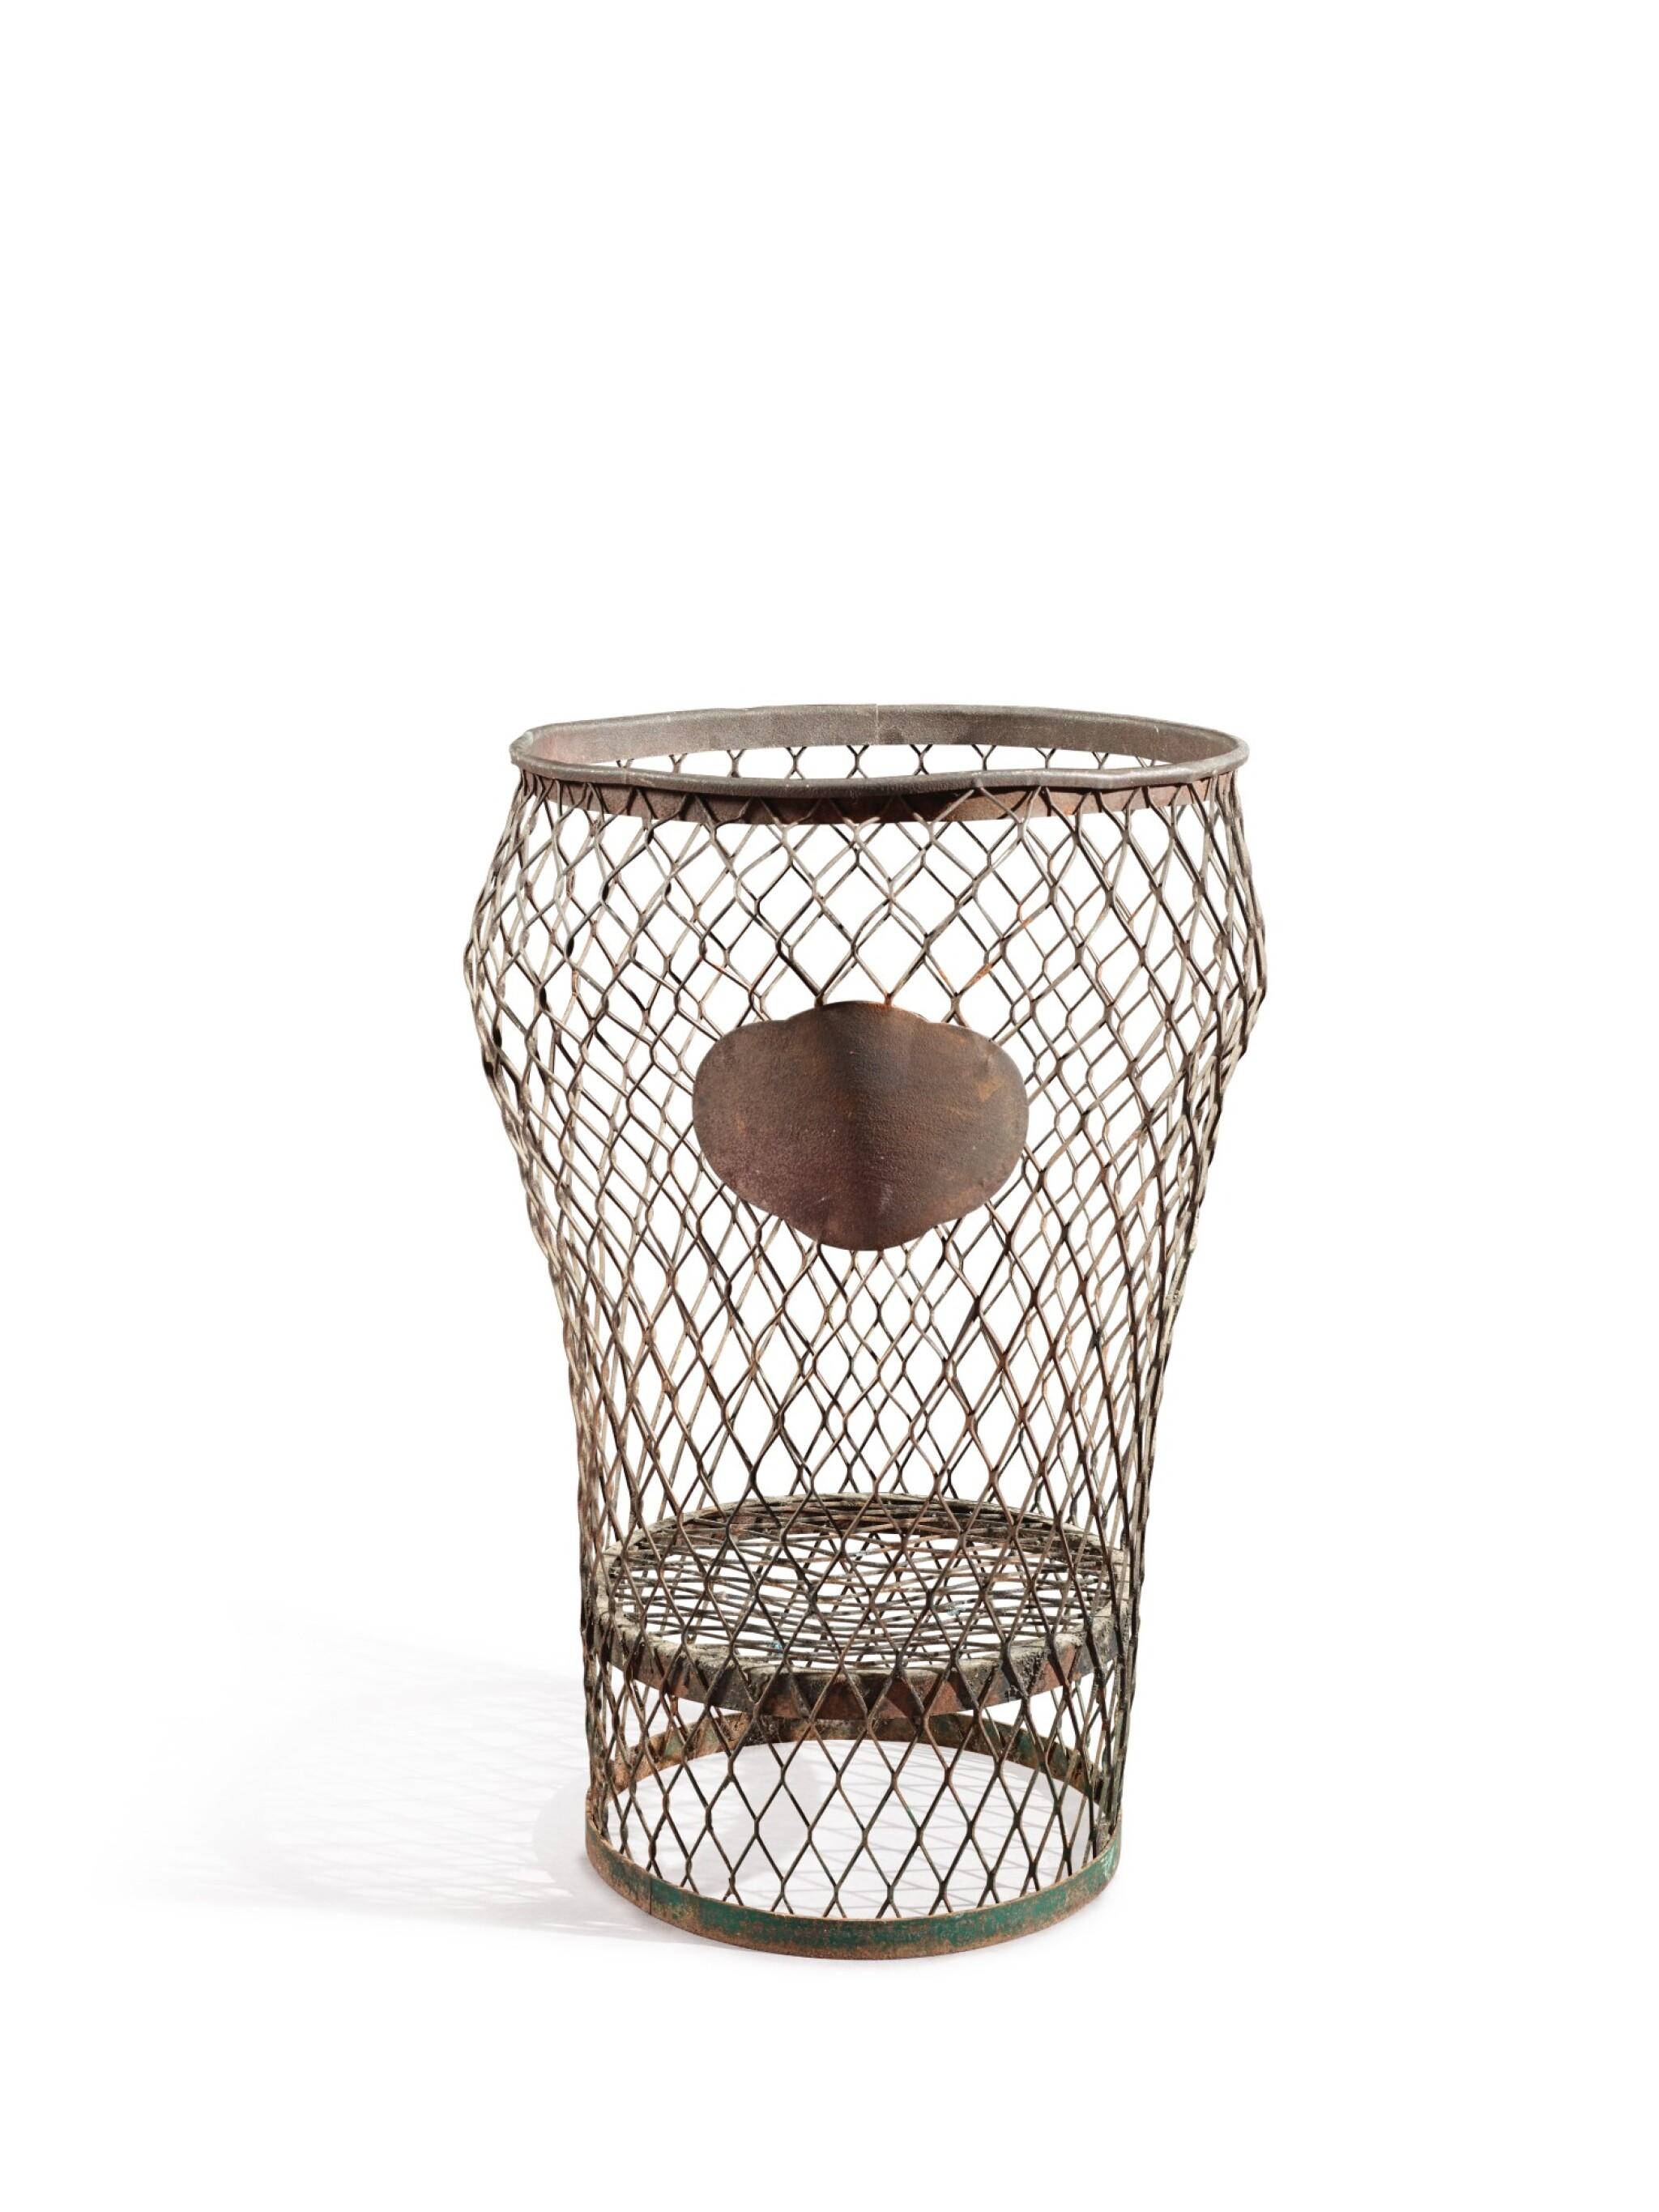 INVERTED BALUSTER-FORM WIRE-WORK BASKET, LATE 19TH CENTURY